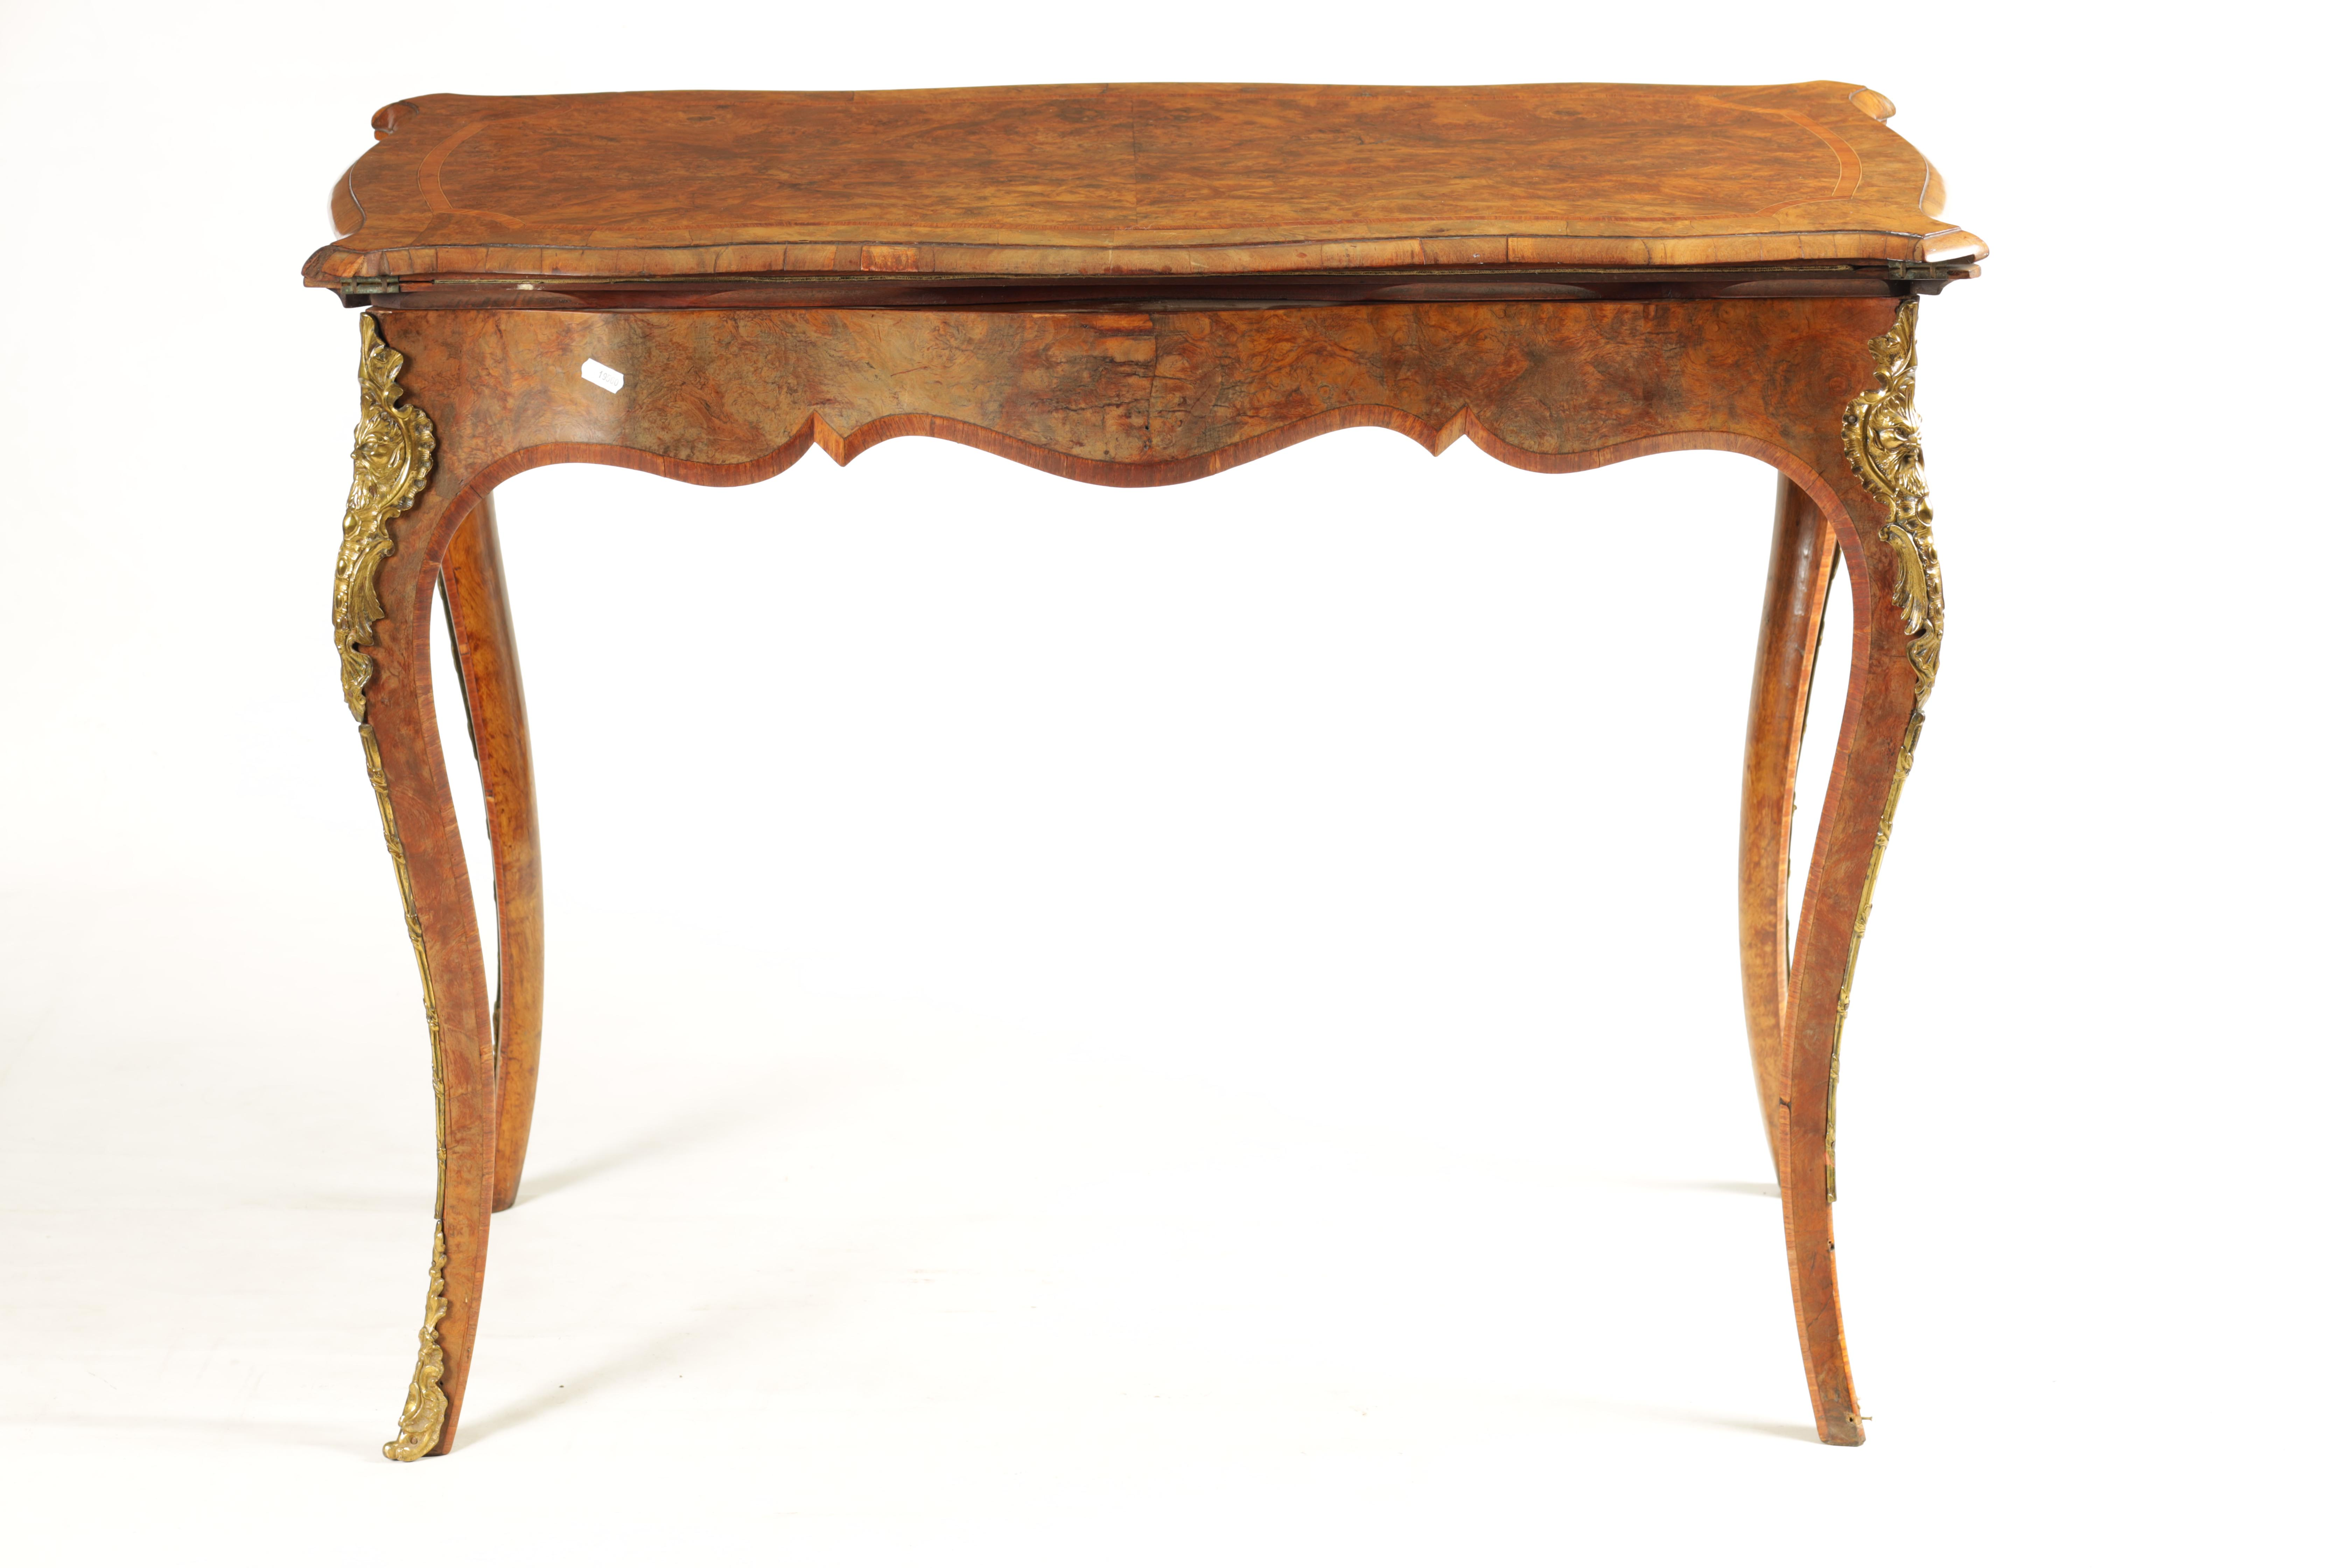 A 19TH CENTURY FRENCH KINGWOOD CROSS-BANDED BURR WALNUT SERPENTINE CARD TABLE with ormolu mounts and - Image 12 of 13